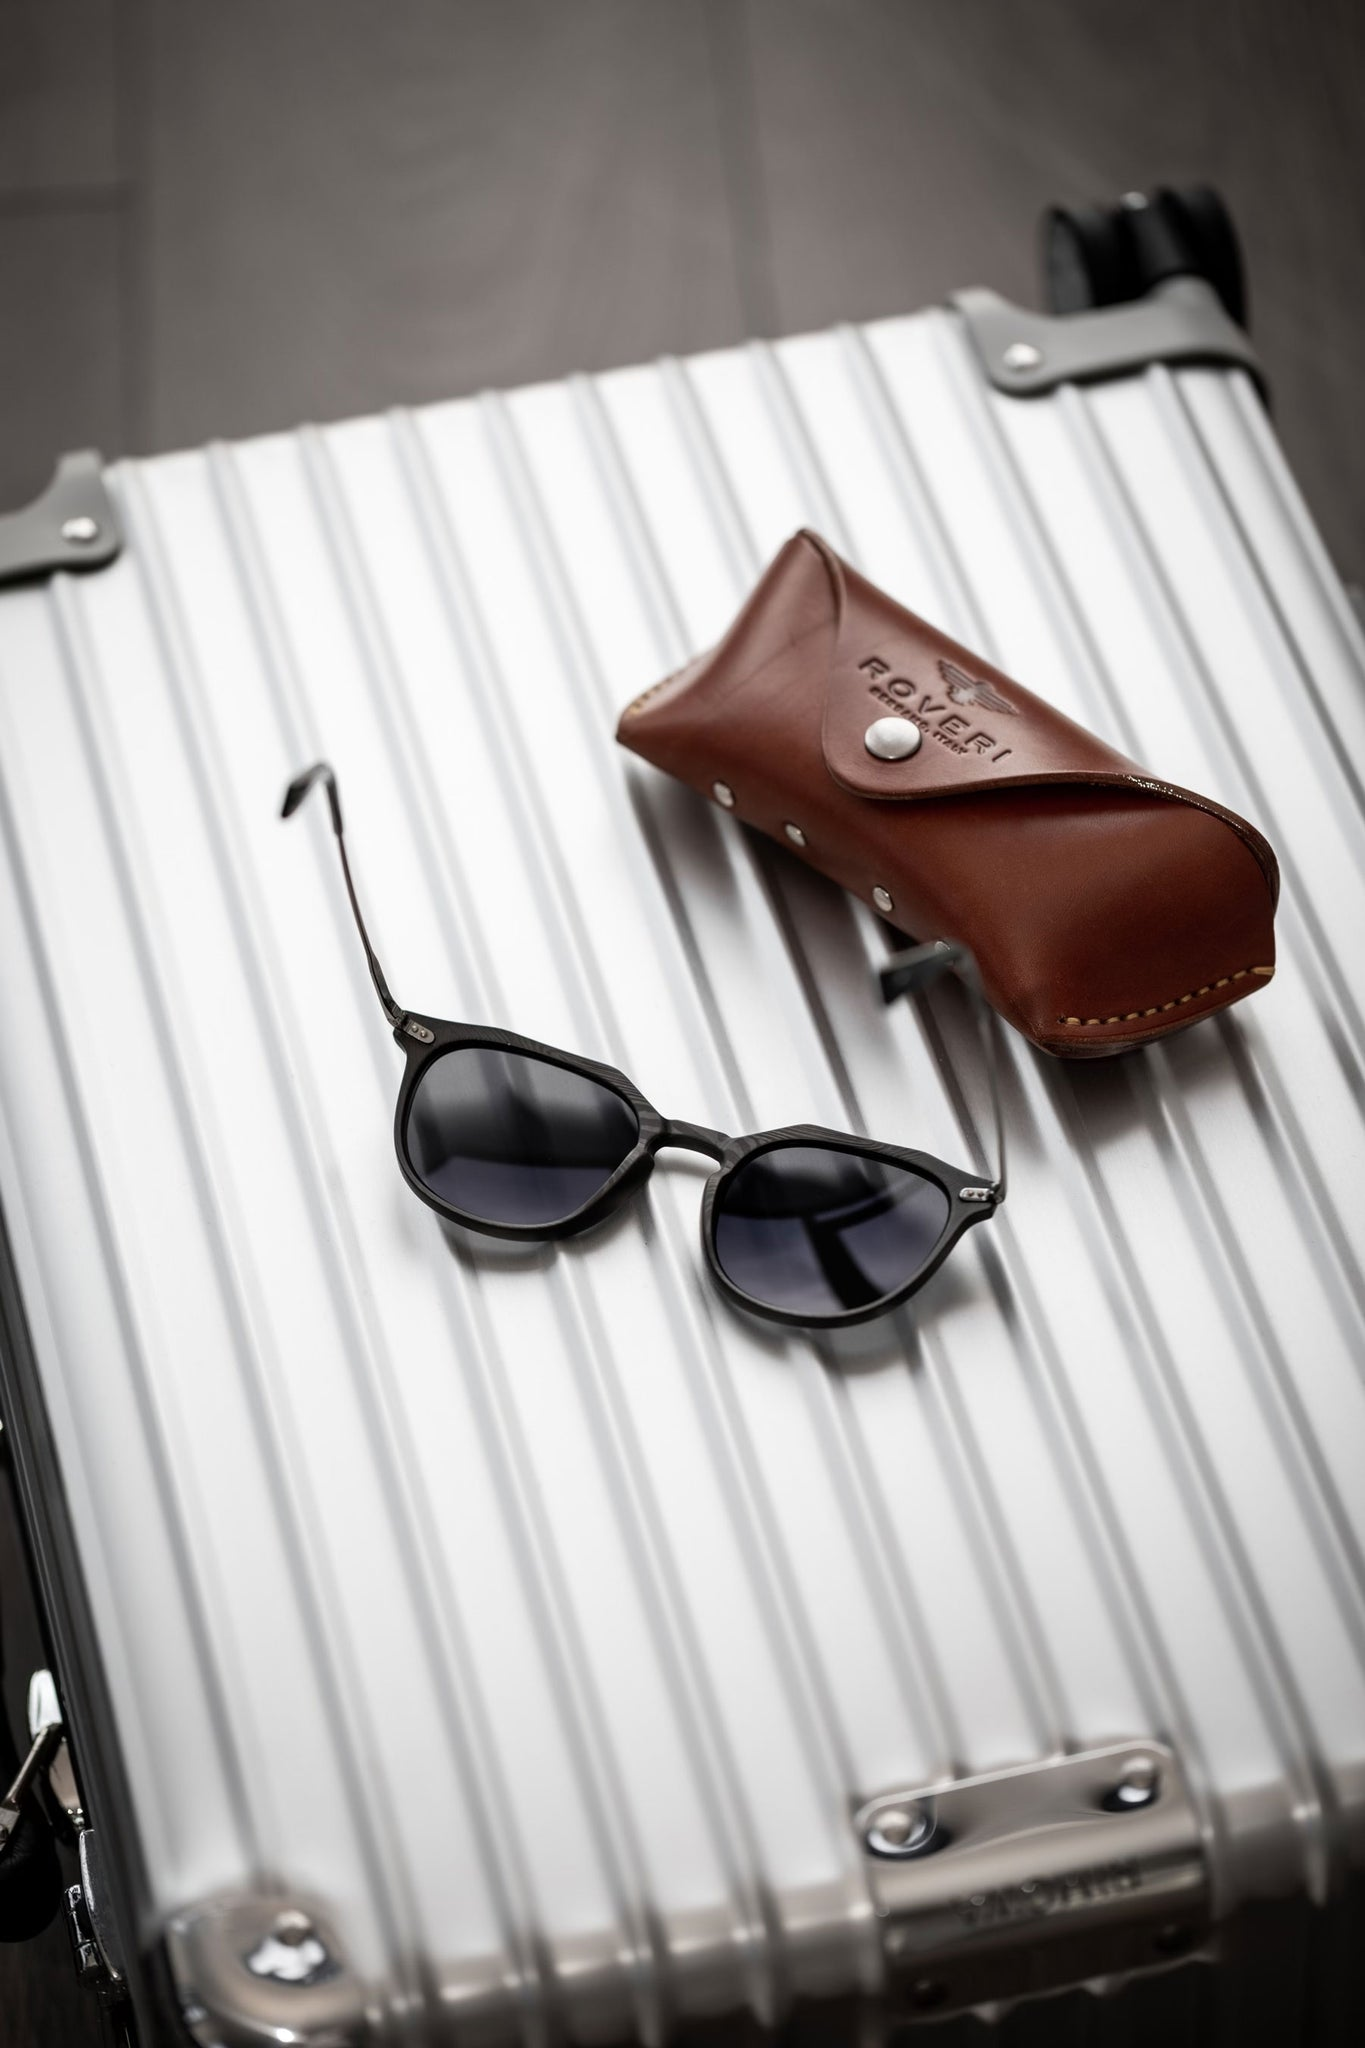 Rimowa silver Classic Cabin Suitcase with new Roveri Eyewear CLM7 black on black and handmade leather case.